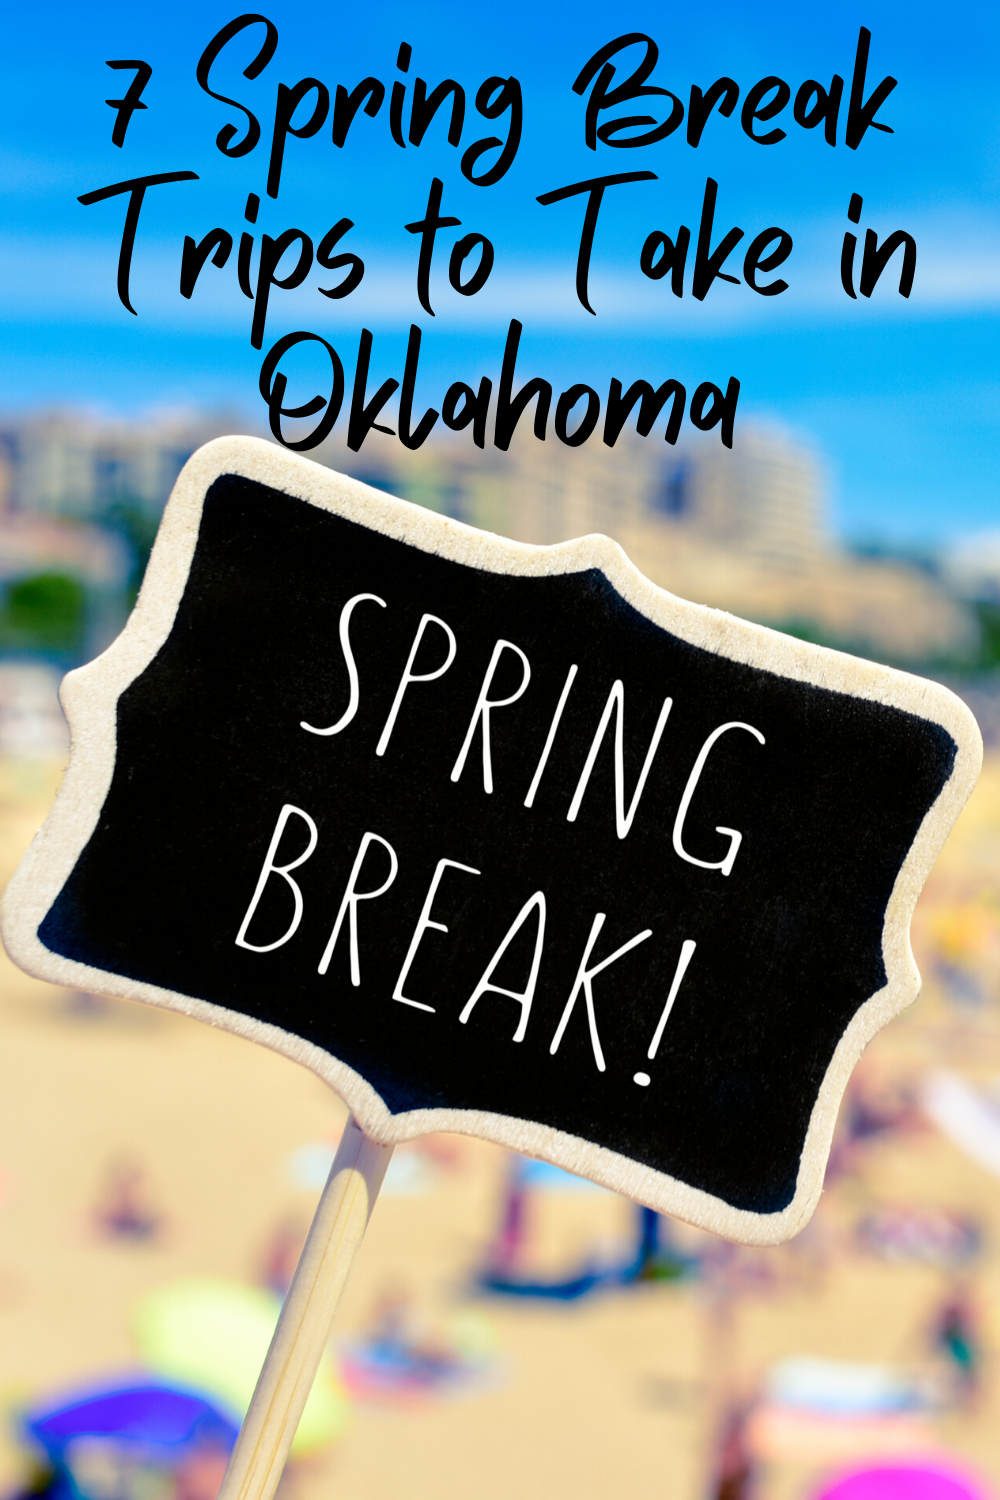 There's no shortage of things to do here in Tulsa. If you are spending spring break in Tulsa these trips will help you plan!